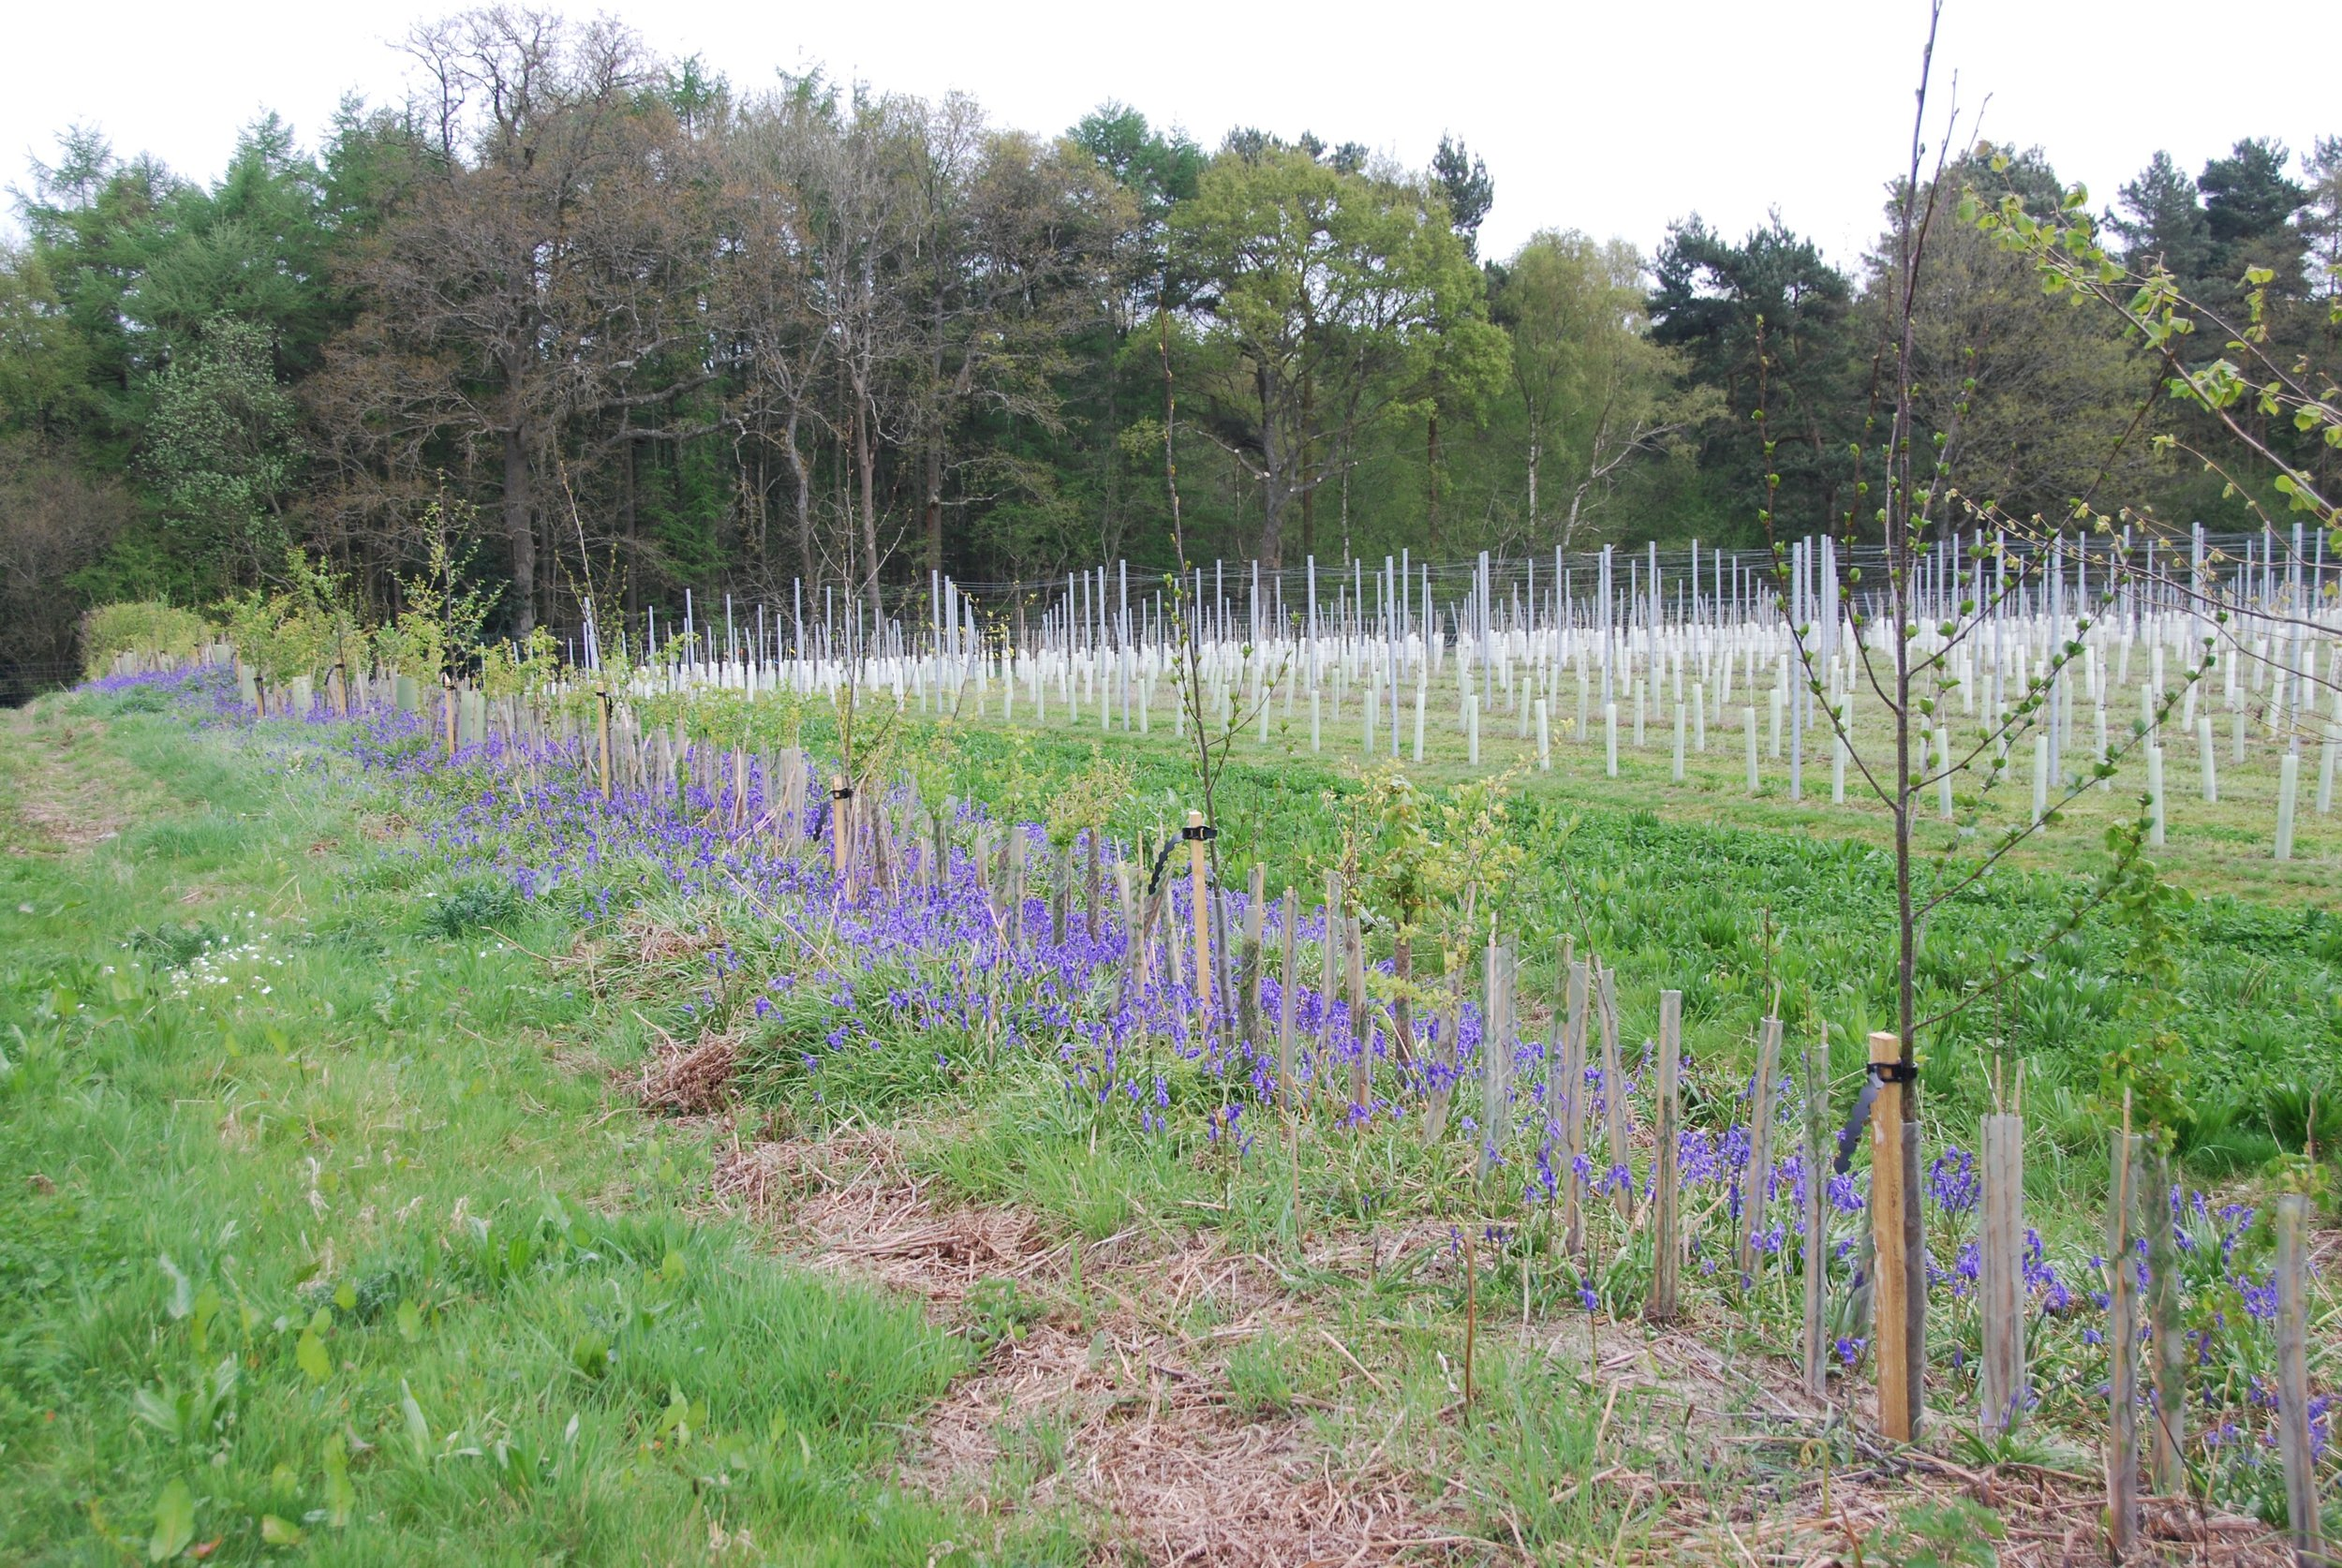 We have planted natural windbreaks on the boundaries of several fields which will help to minimise wind damage to vines.